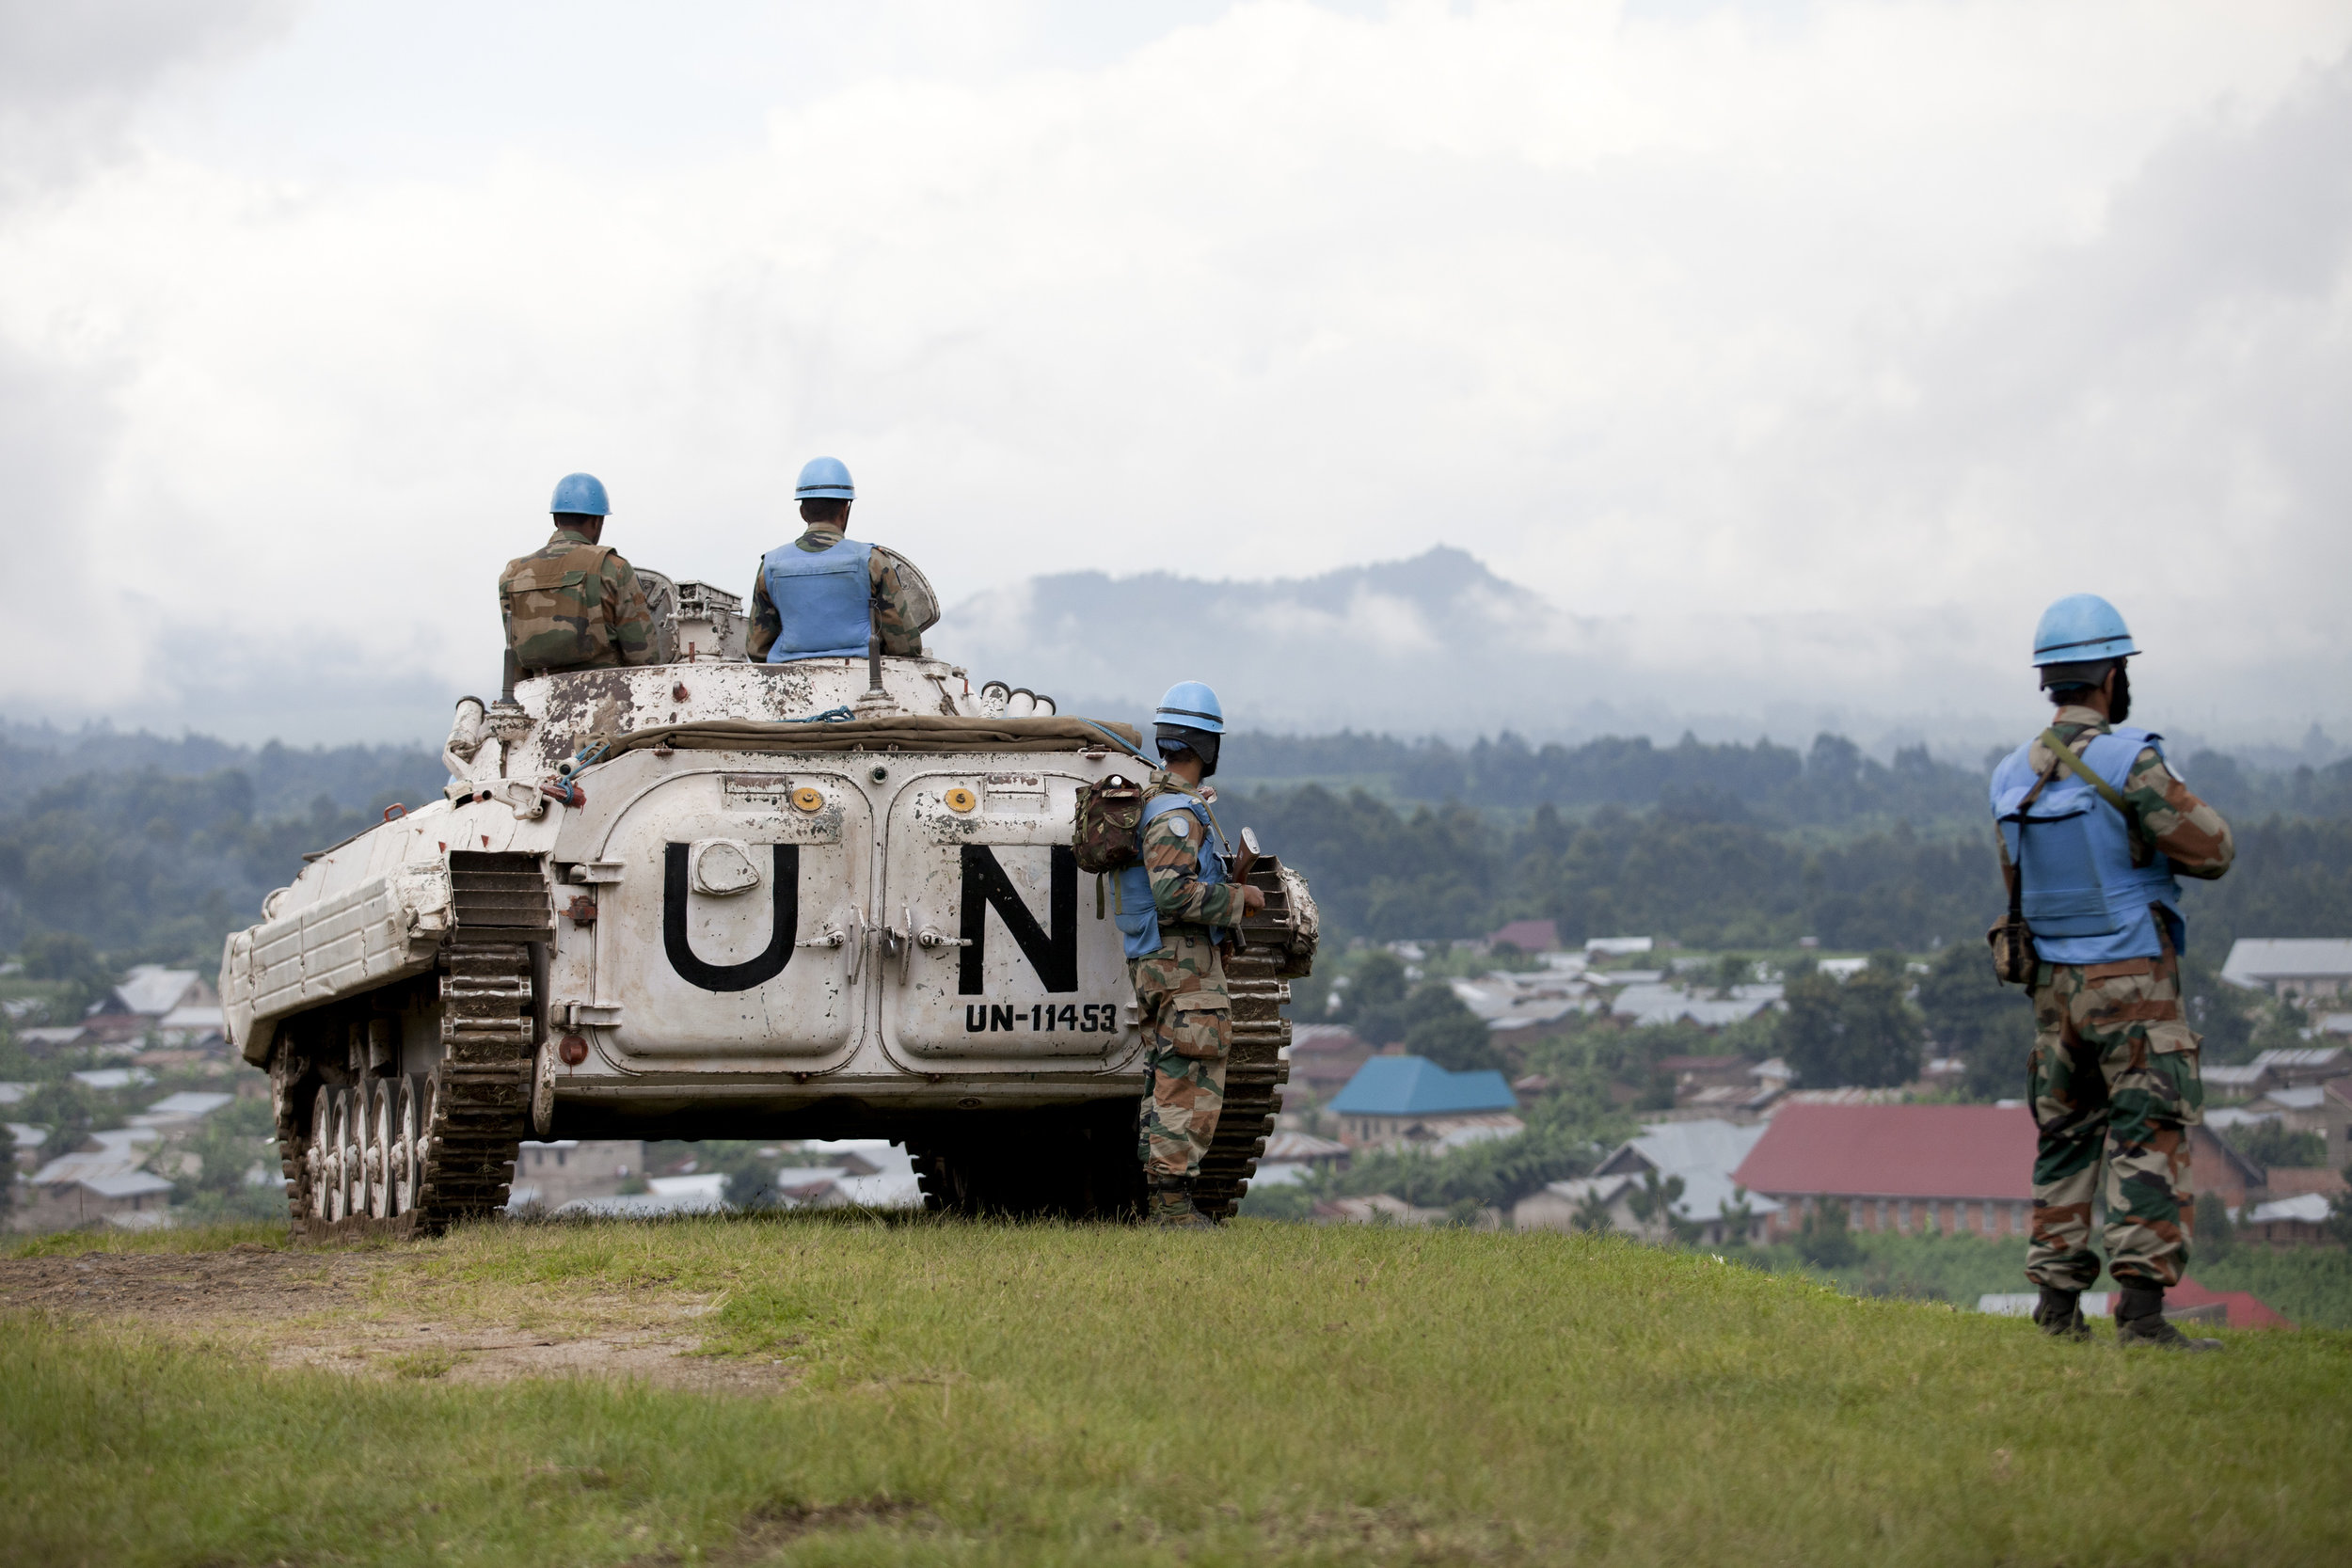 Indian peacekeepers with the MONUSCO mission watch over conflict zone in North Kivu province, Democratic Republic of Congo, in 2012. (Sylvain Liechti/United Nations)